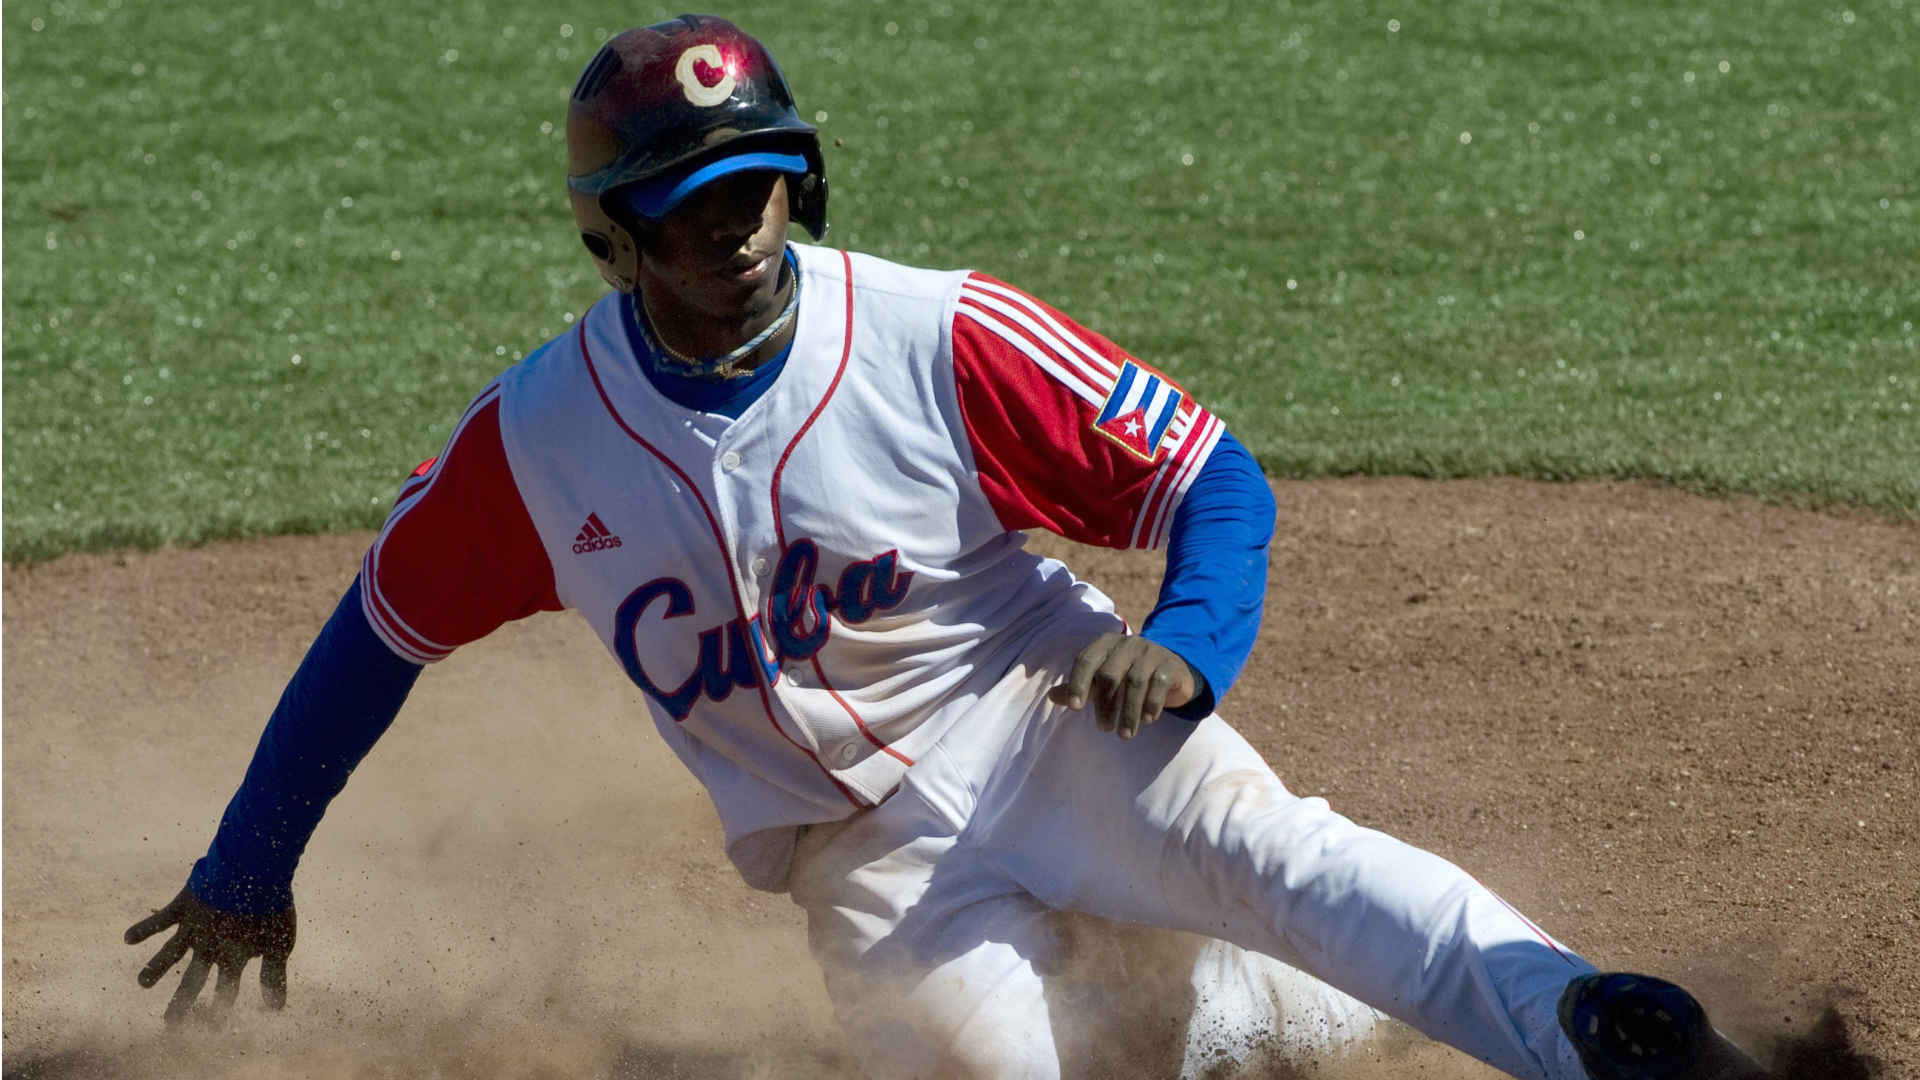 Scouting Report: Red Sox prospect Rusney Castillo